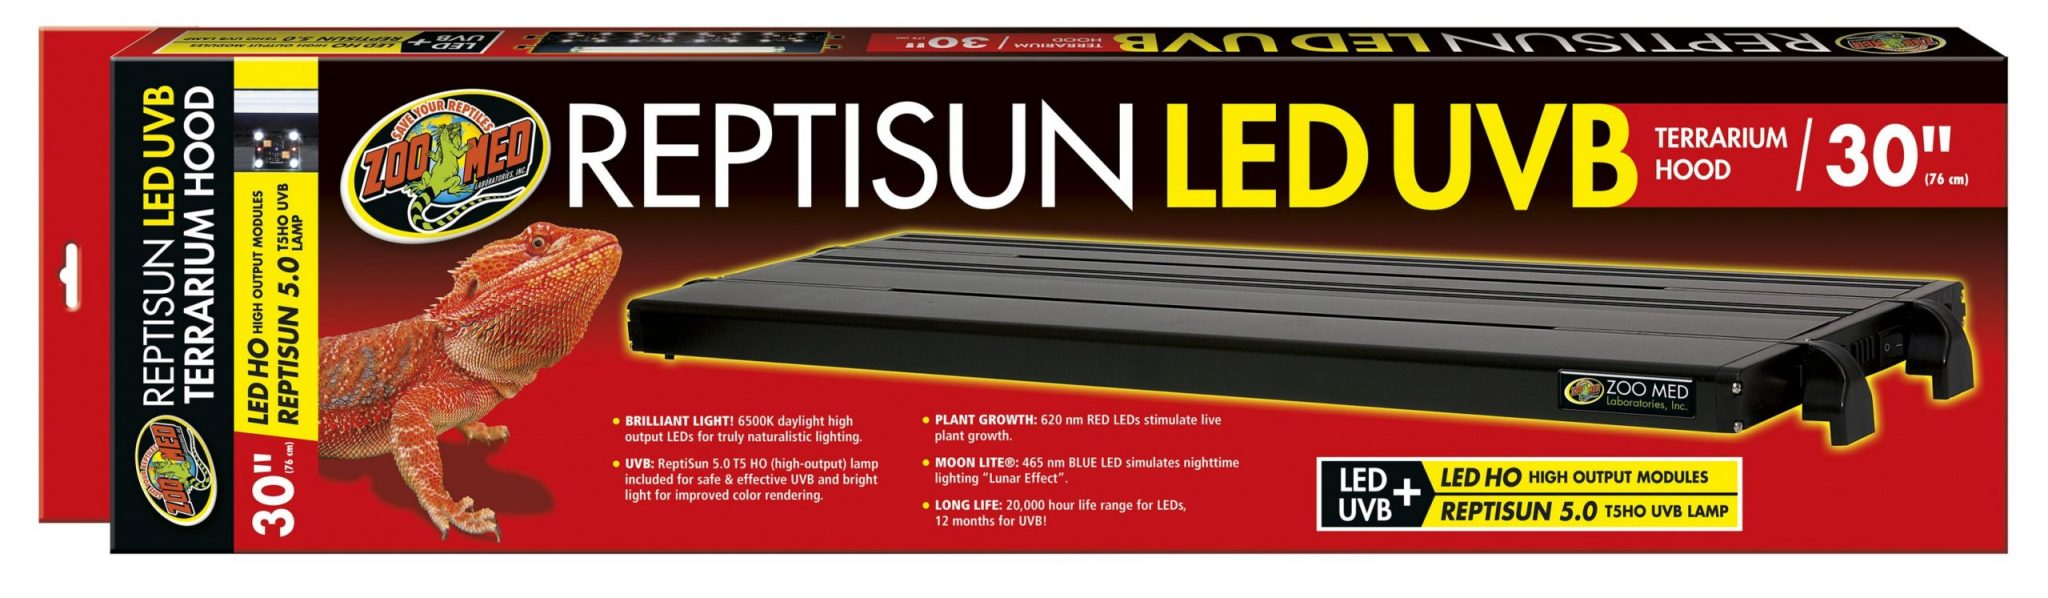 ReptiSun LED/UVB Fixture 30″-ZooMed